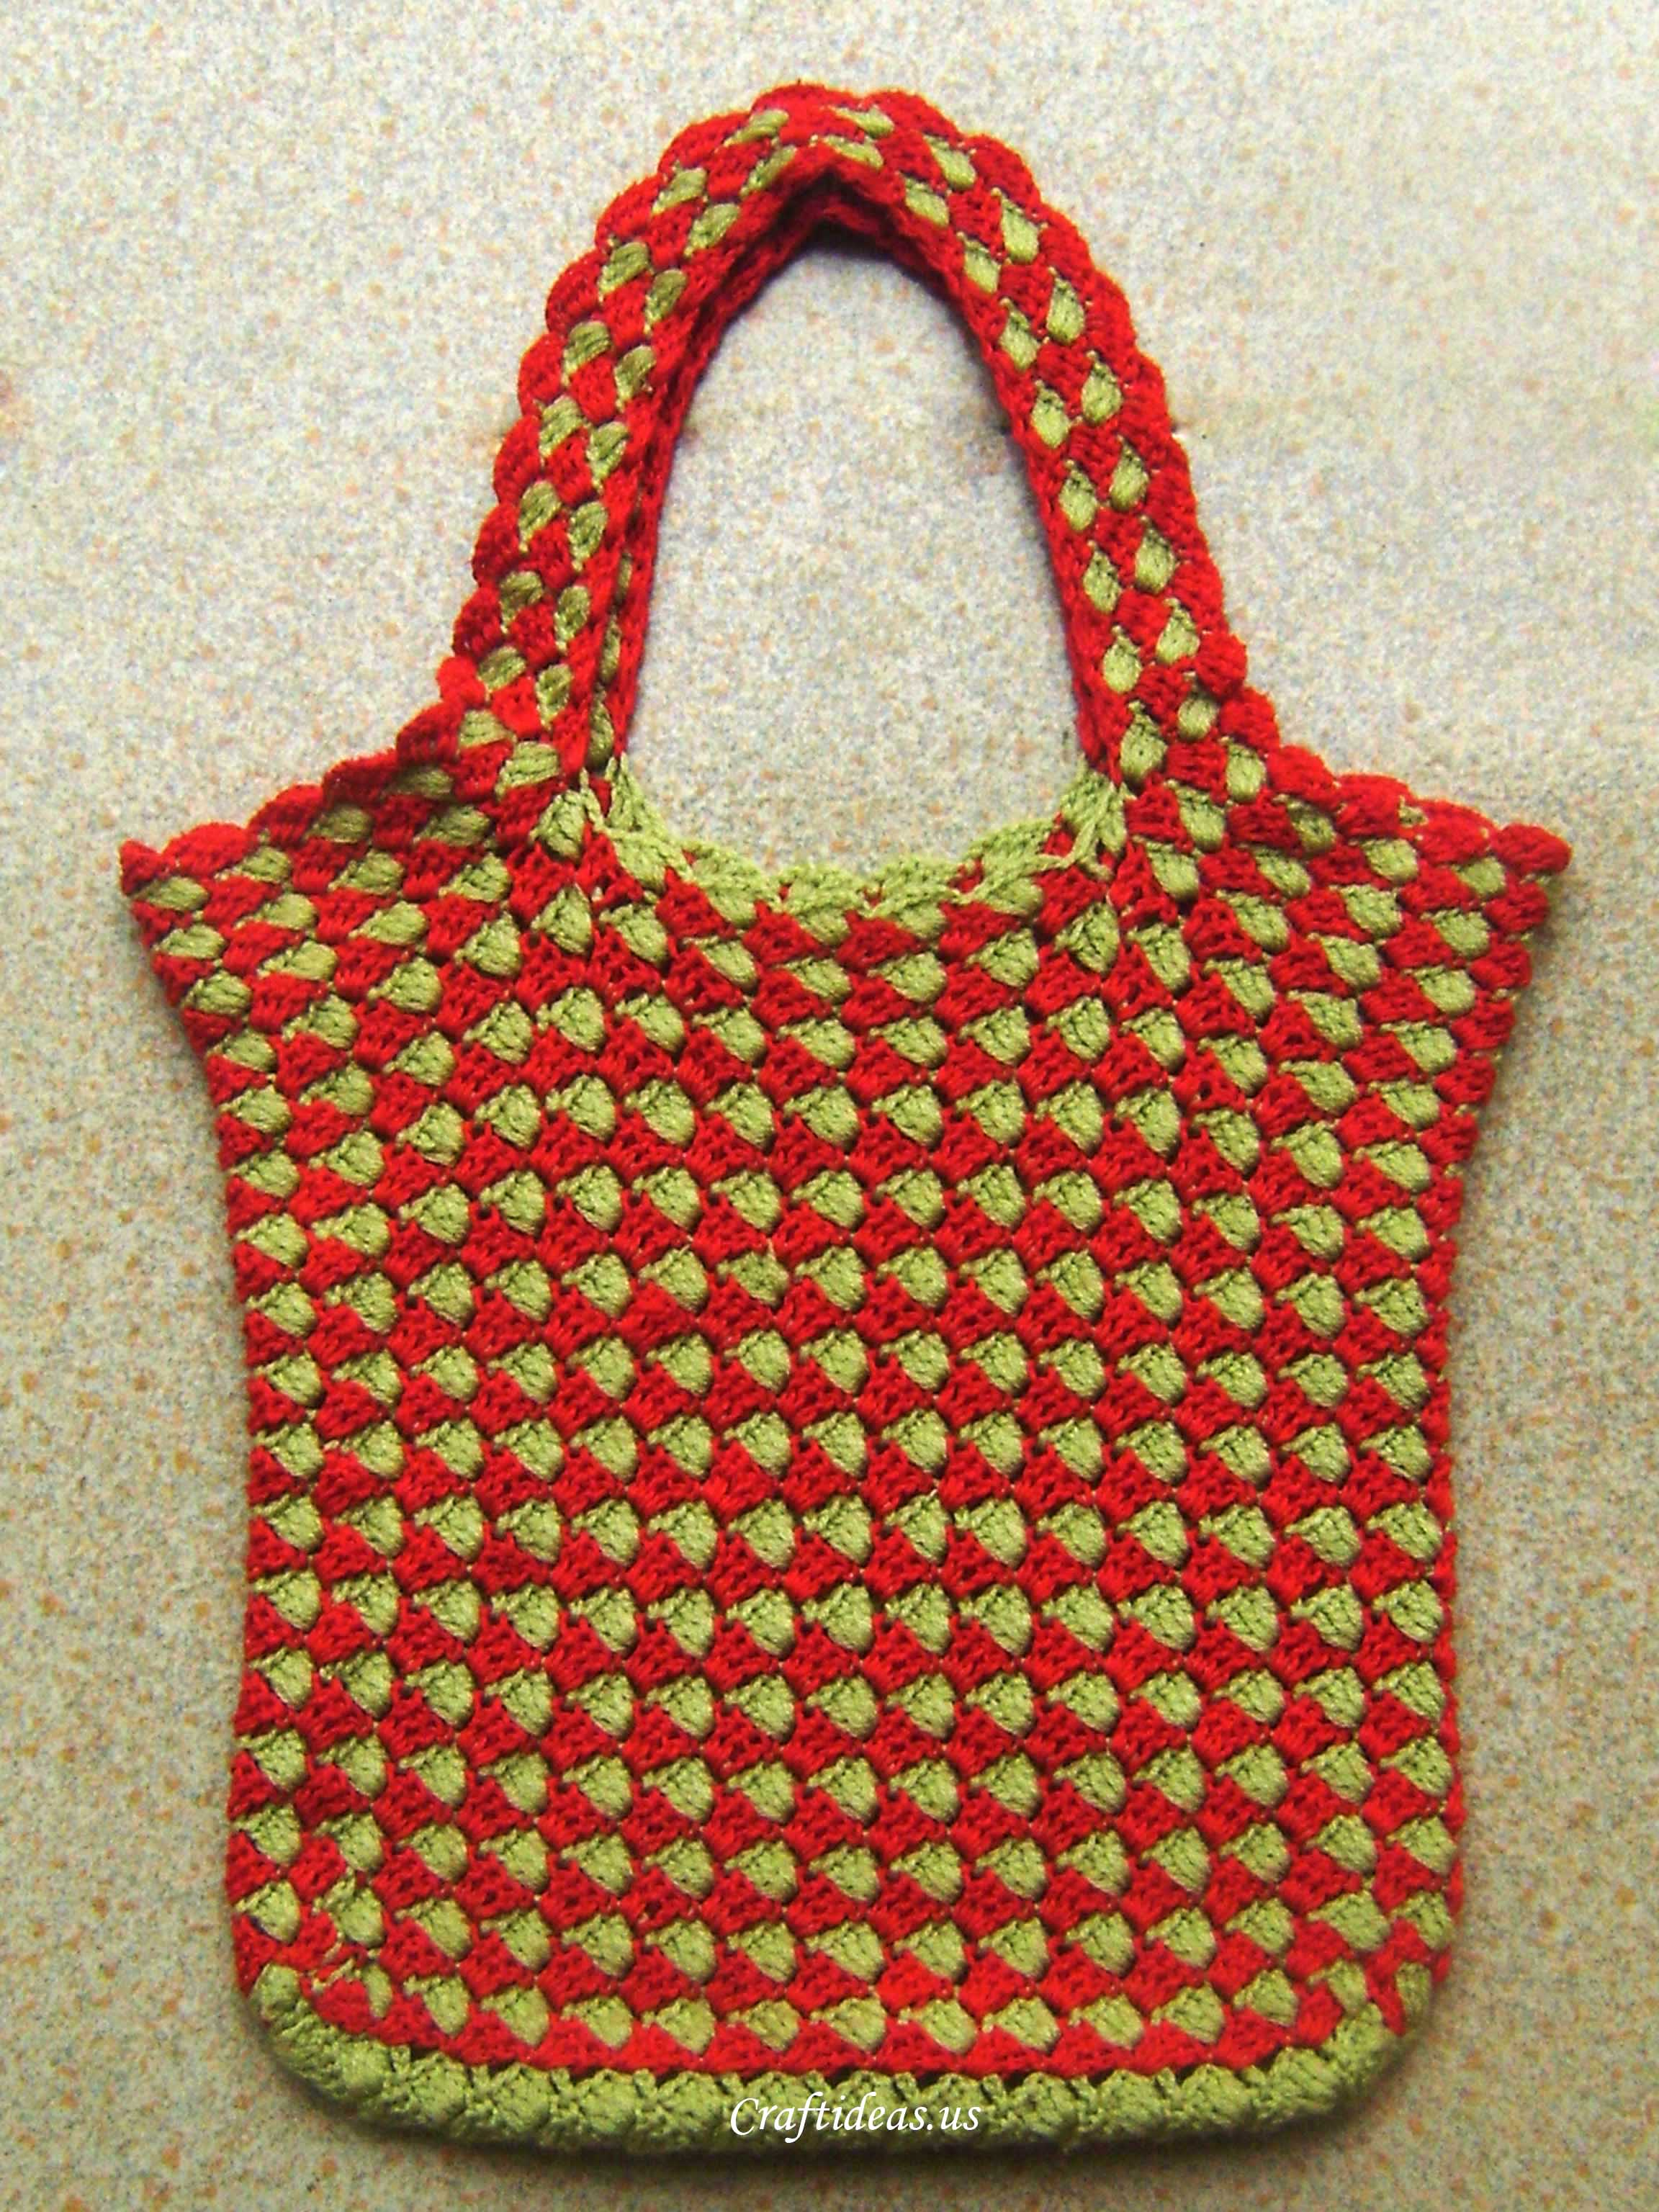 Crochet Bags And Purses Tutorial : crochet bag